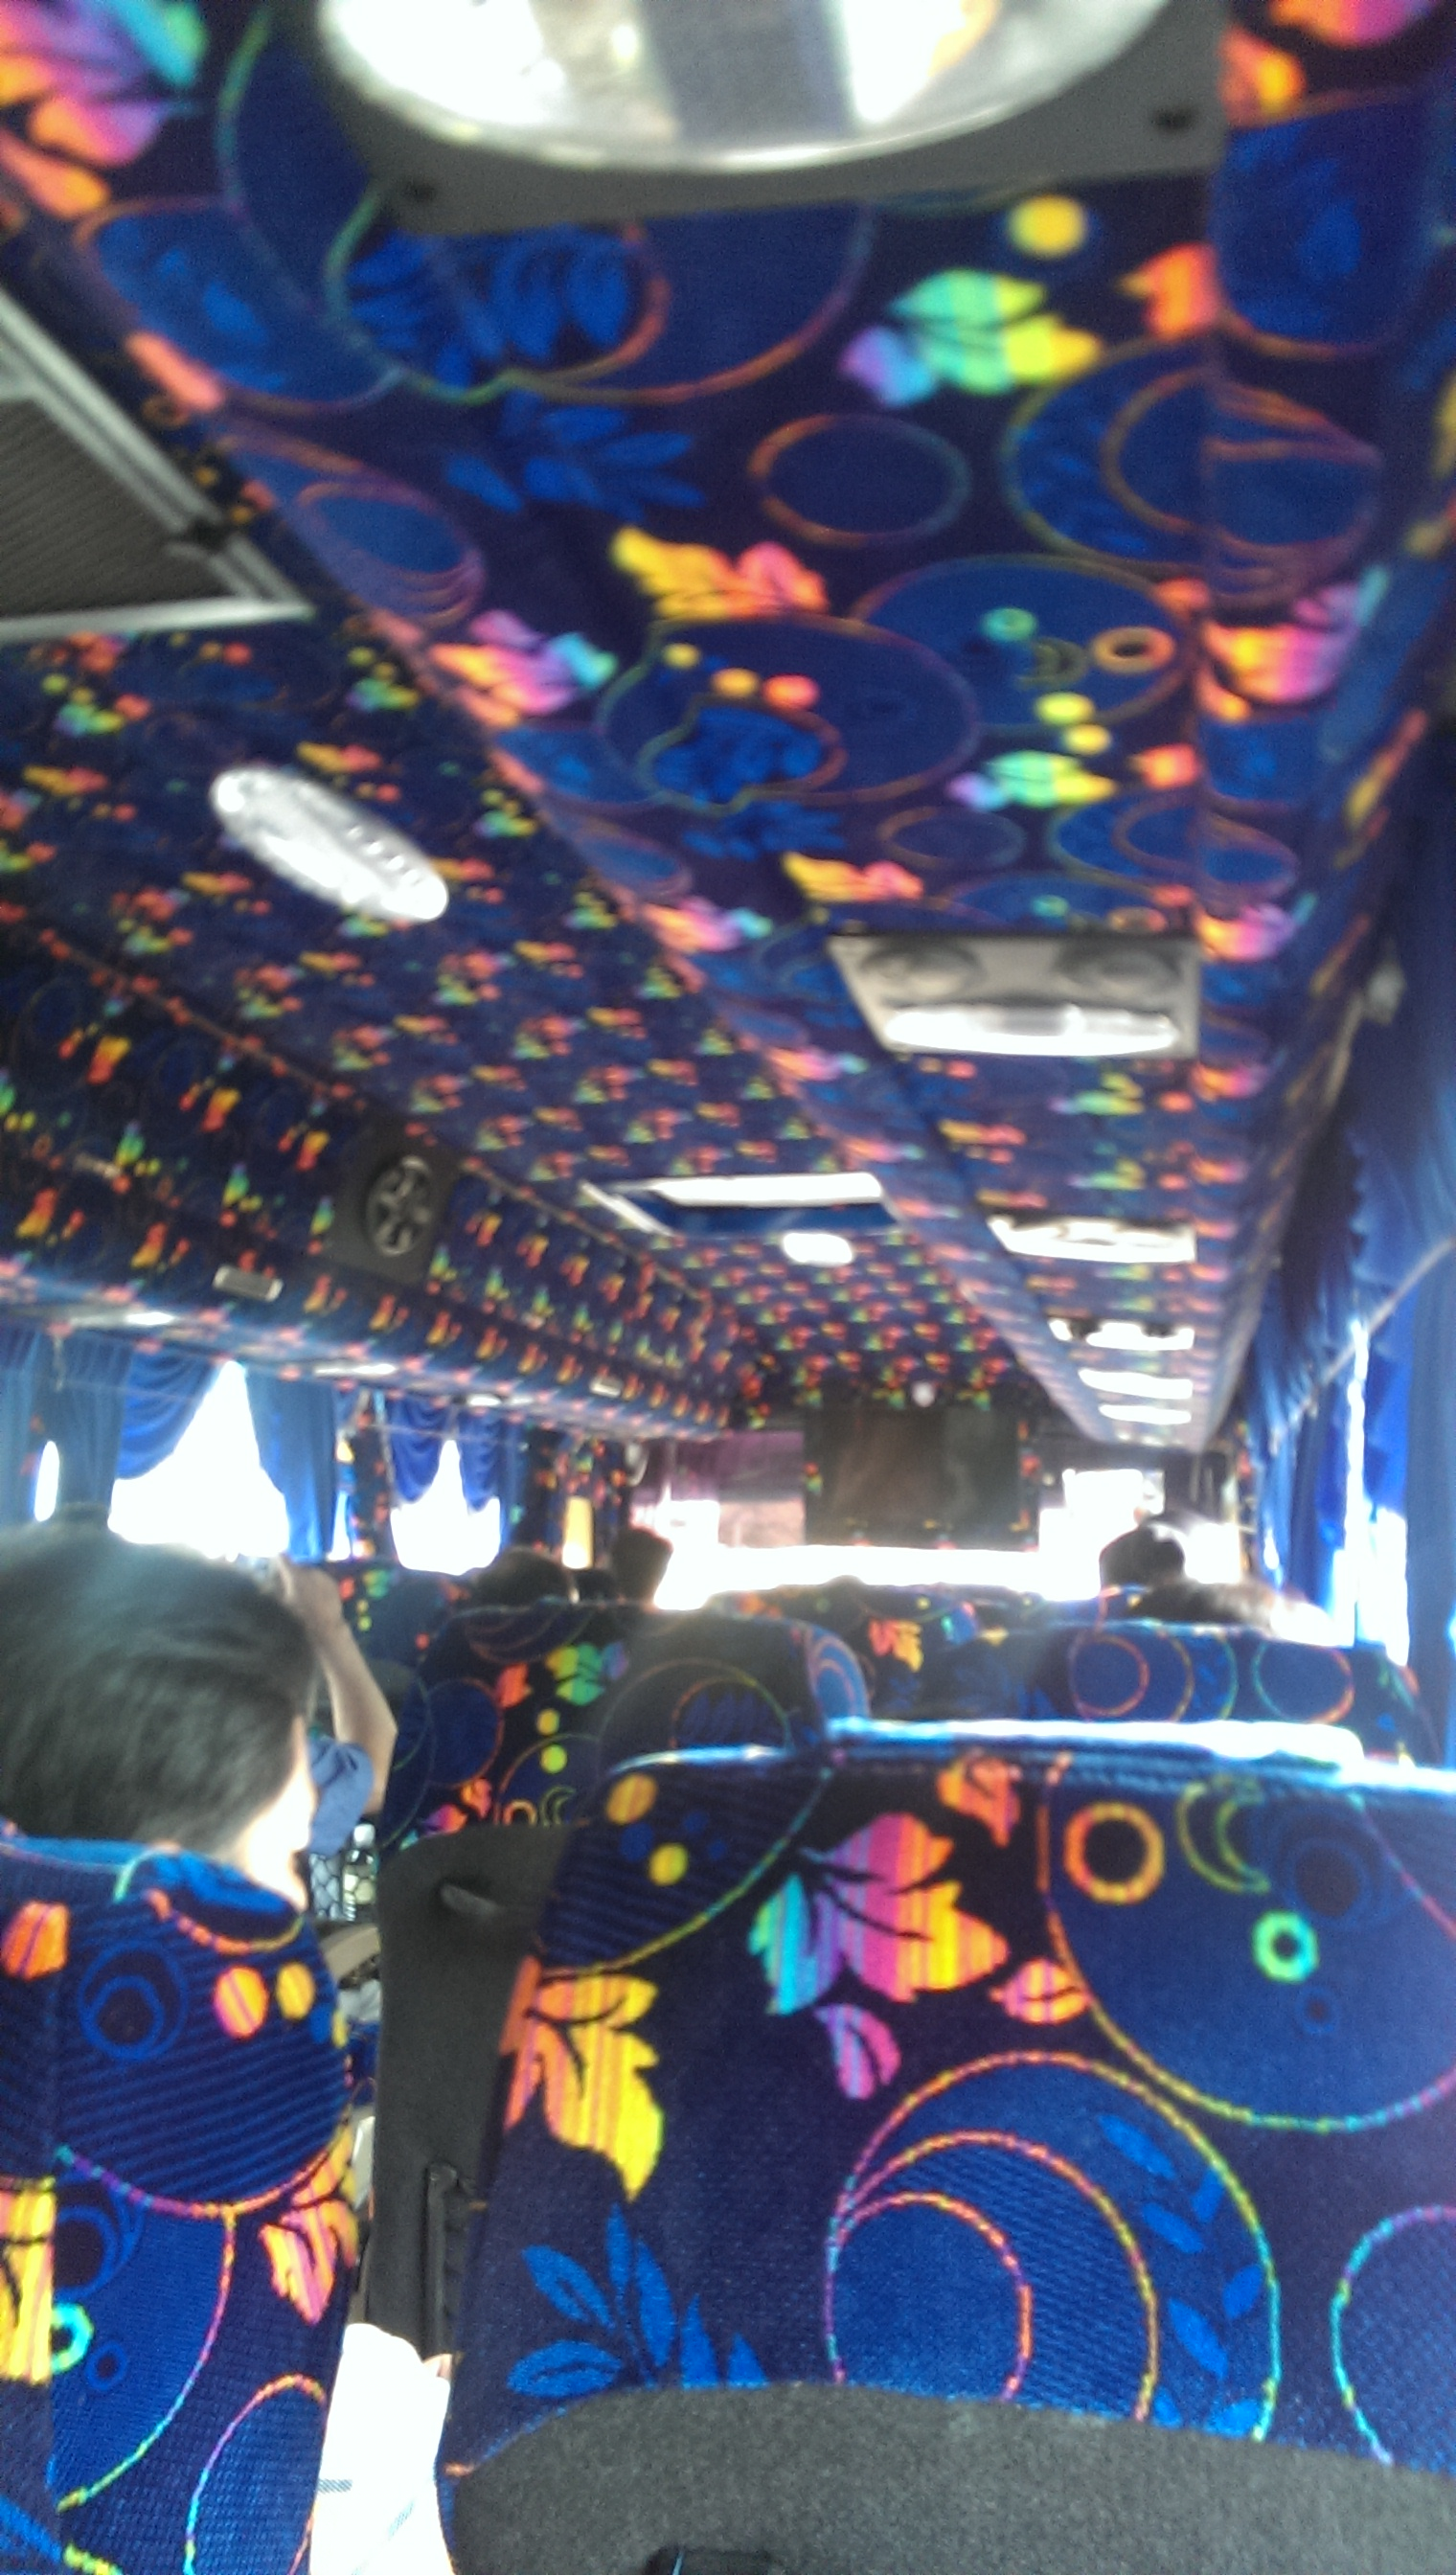 Gotta love the color scheme of the tour bus.